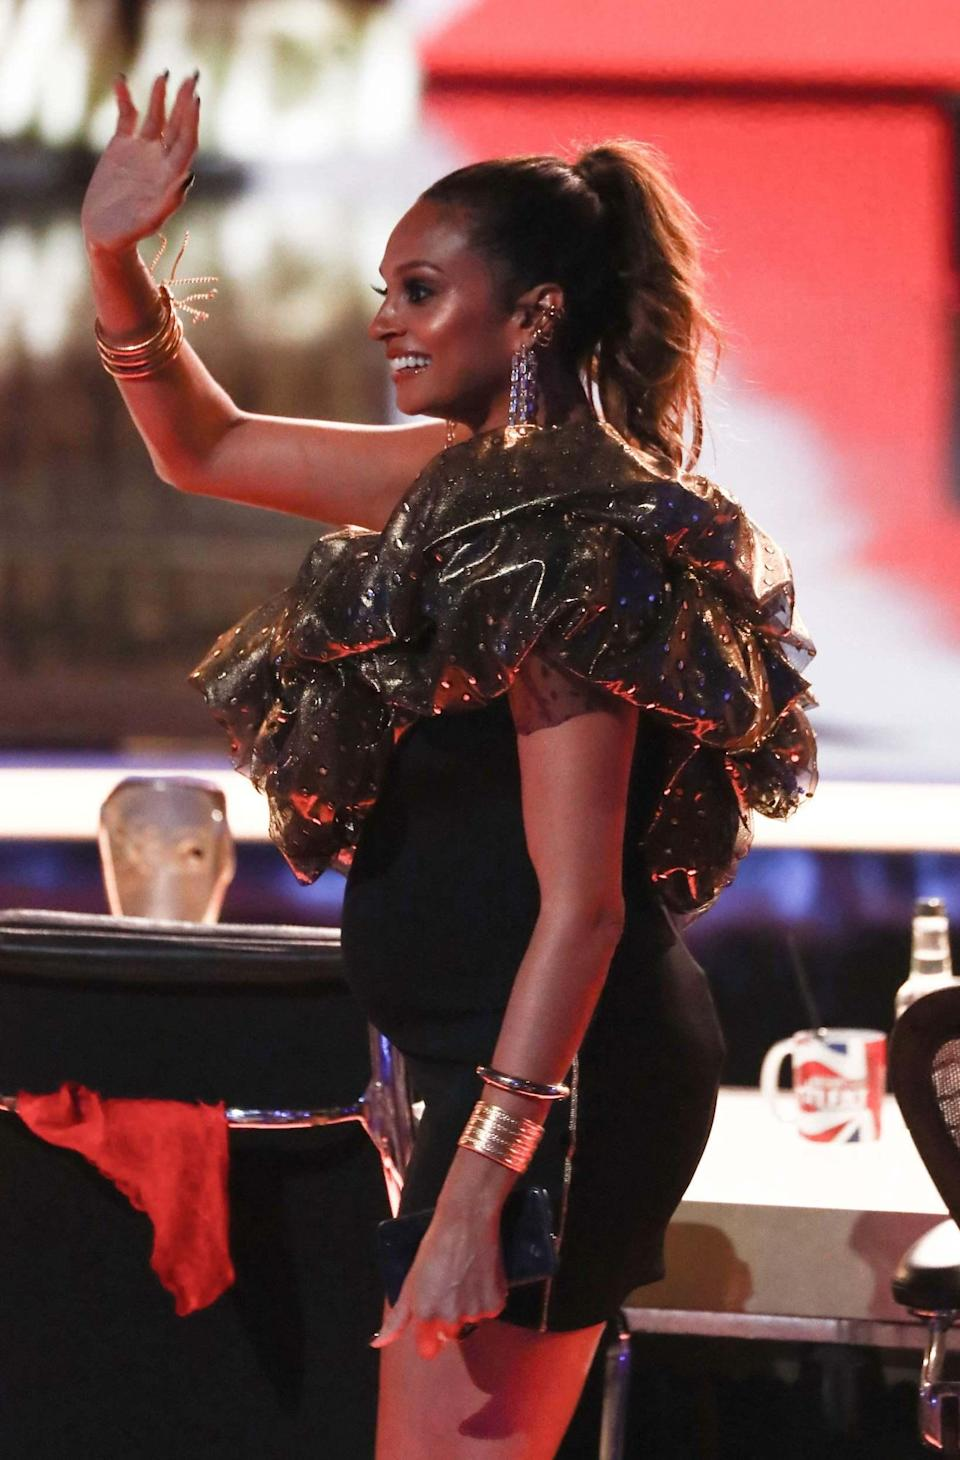 Alesha Dixon pregnant: Britain's Got Talent hosts Ant and Dec reveal baby news live on show as fans hail 'best intro ever'